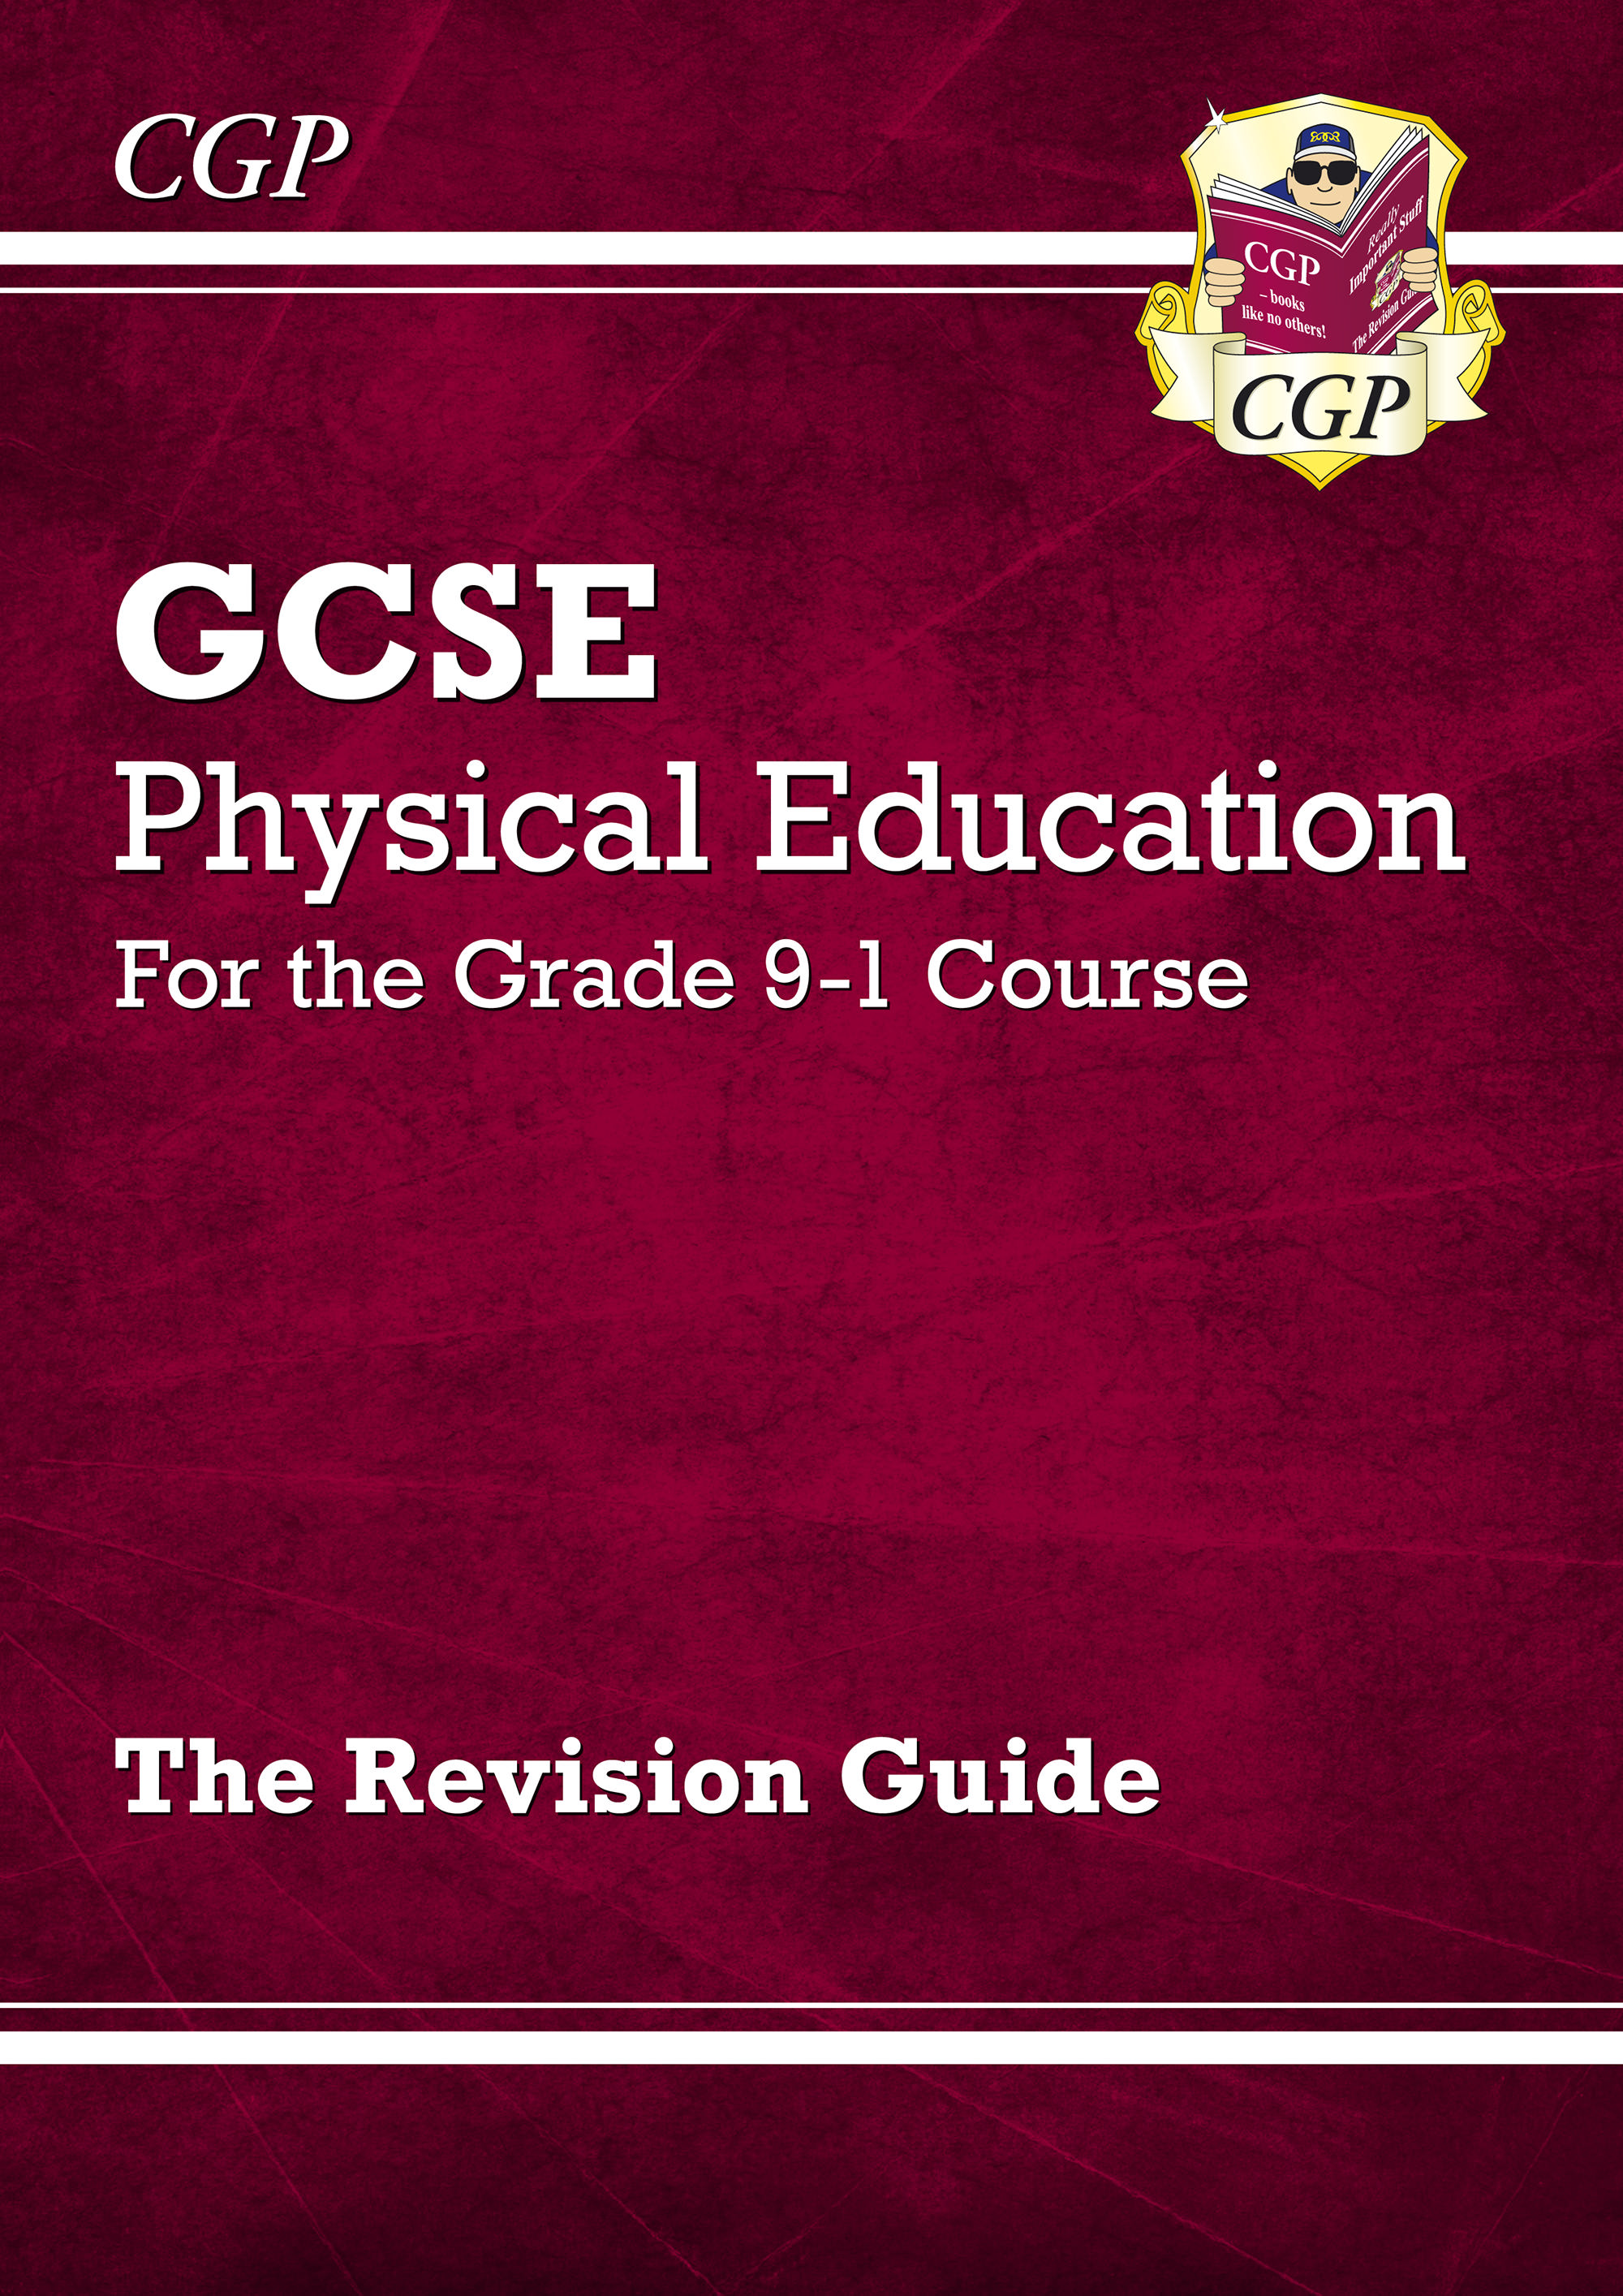 JHR43 - New GCSE Physical Education Revision Guide - for the Grade 9-1 Course